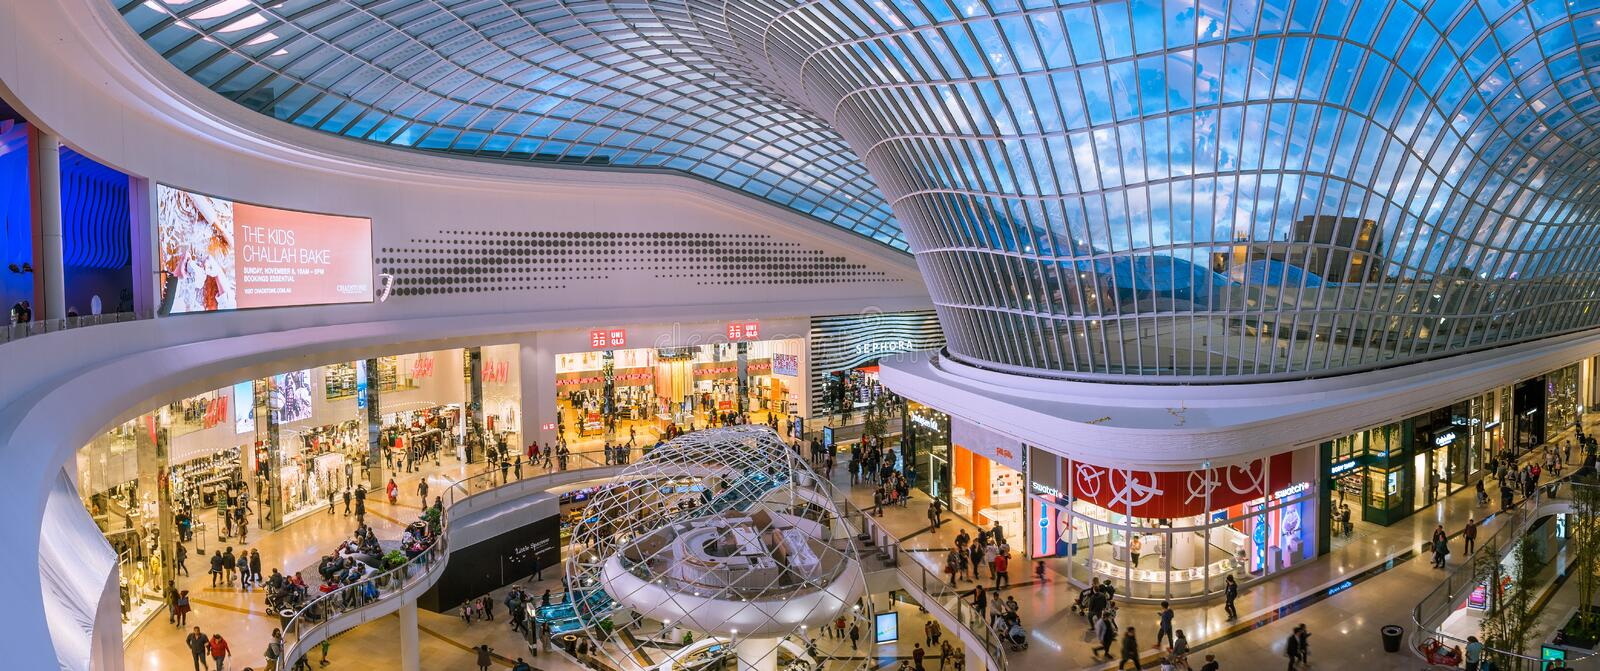 Nouvelle aile du centre commercial de Chadstone, le plus grand centre commercial dans l'Australie photo stock